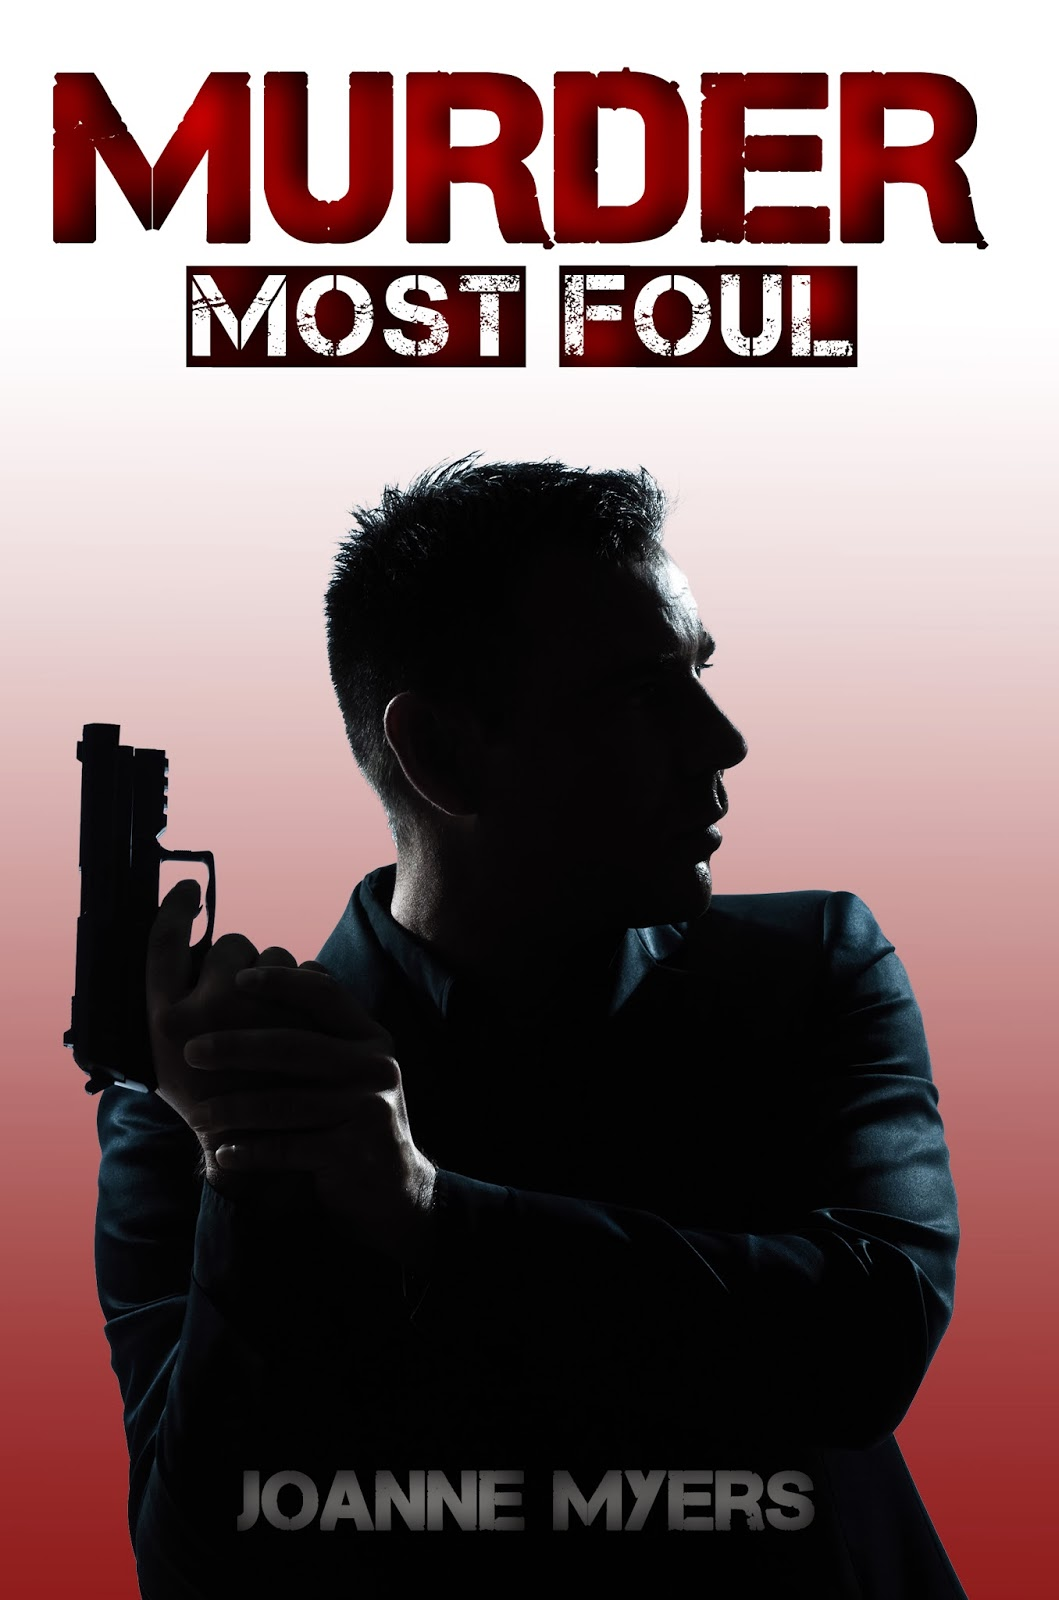 Book Spotlight: Murder Most Foul by JoAnne Myers